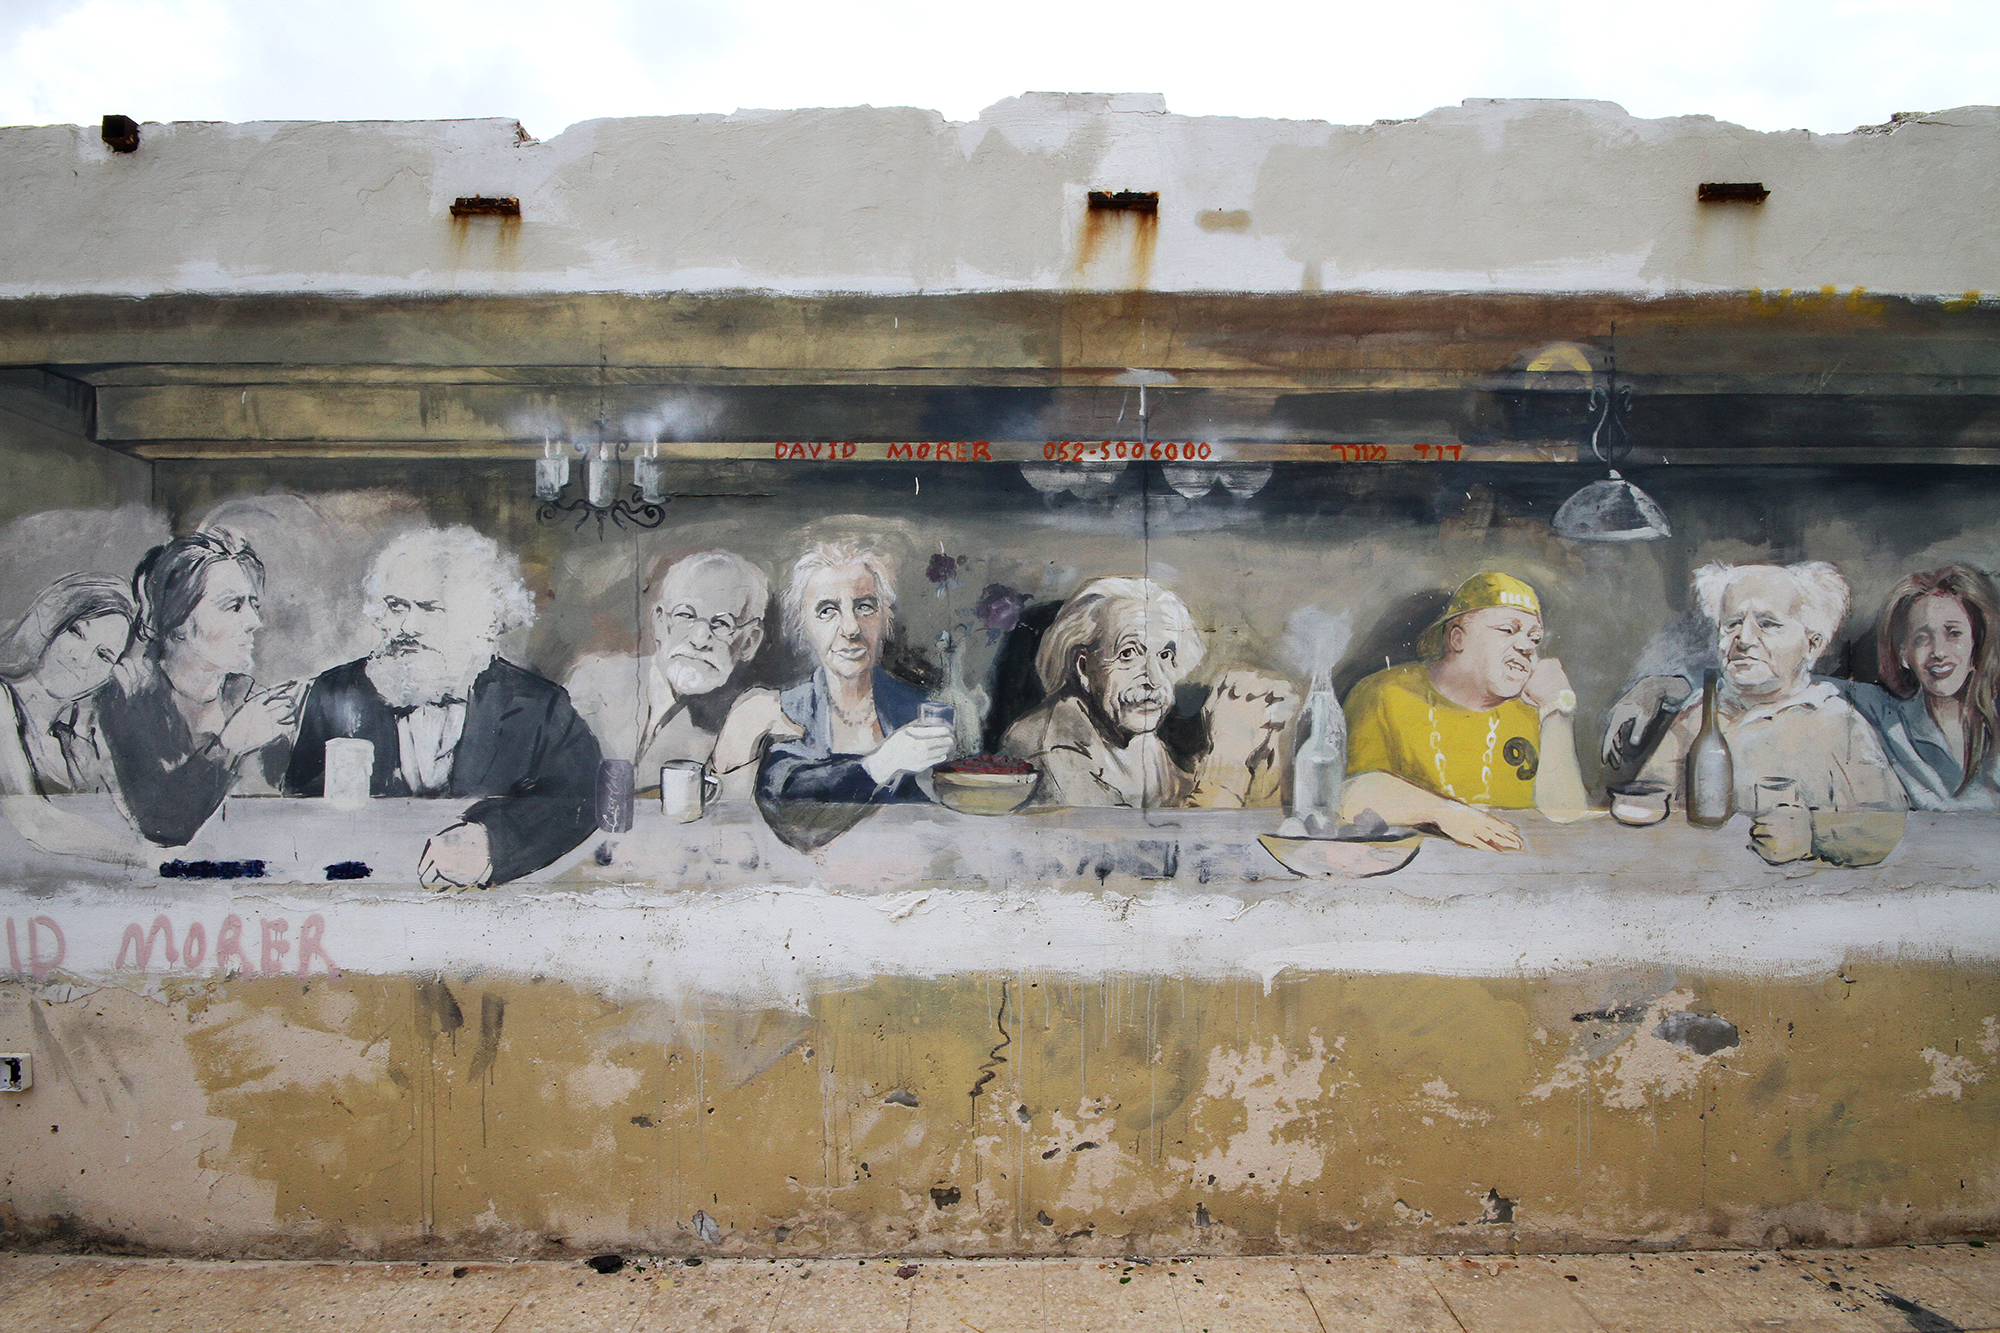 Last Supper graffiti